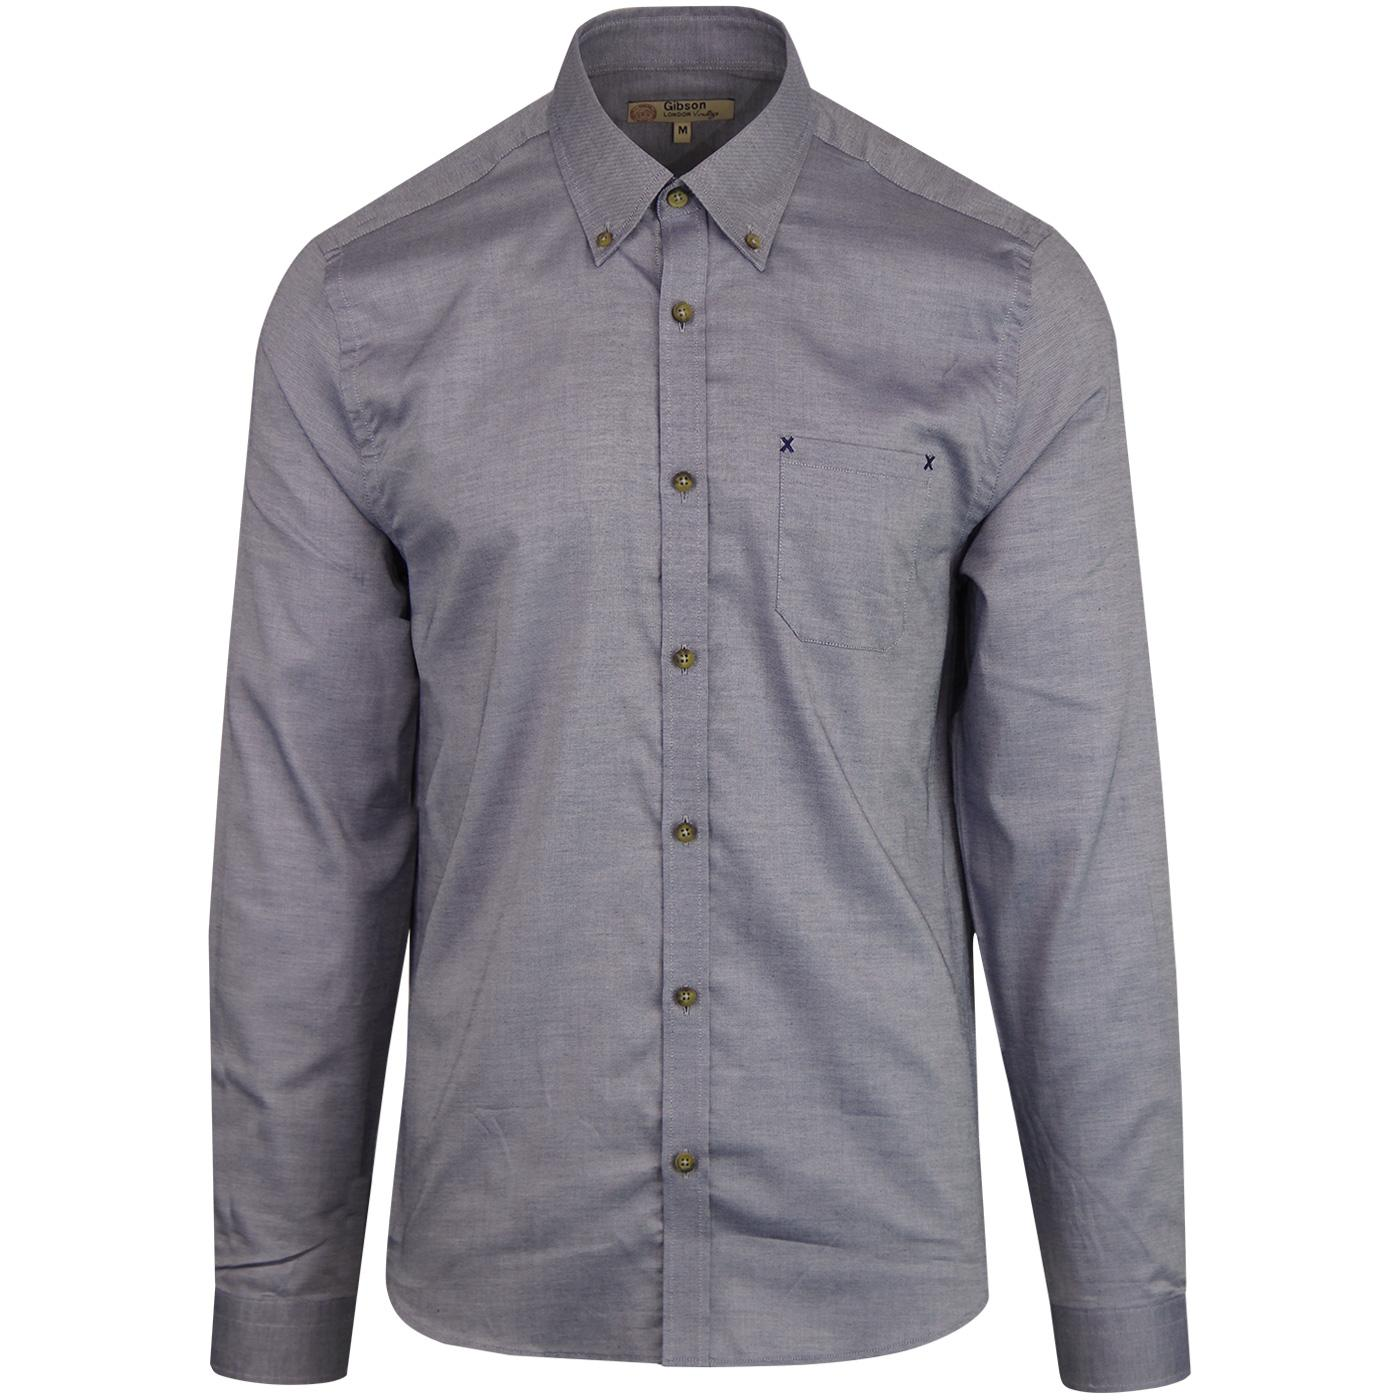 GIBSON LONDON Mens Retro Smart Oxford Shirt Blue